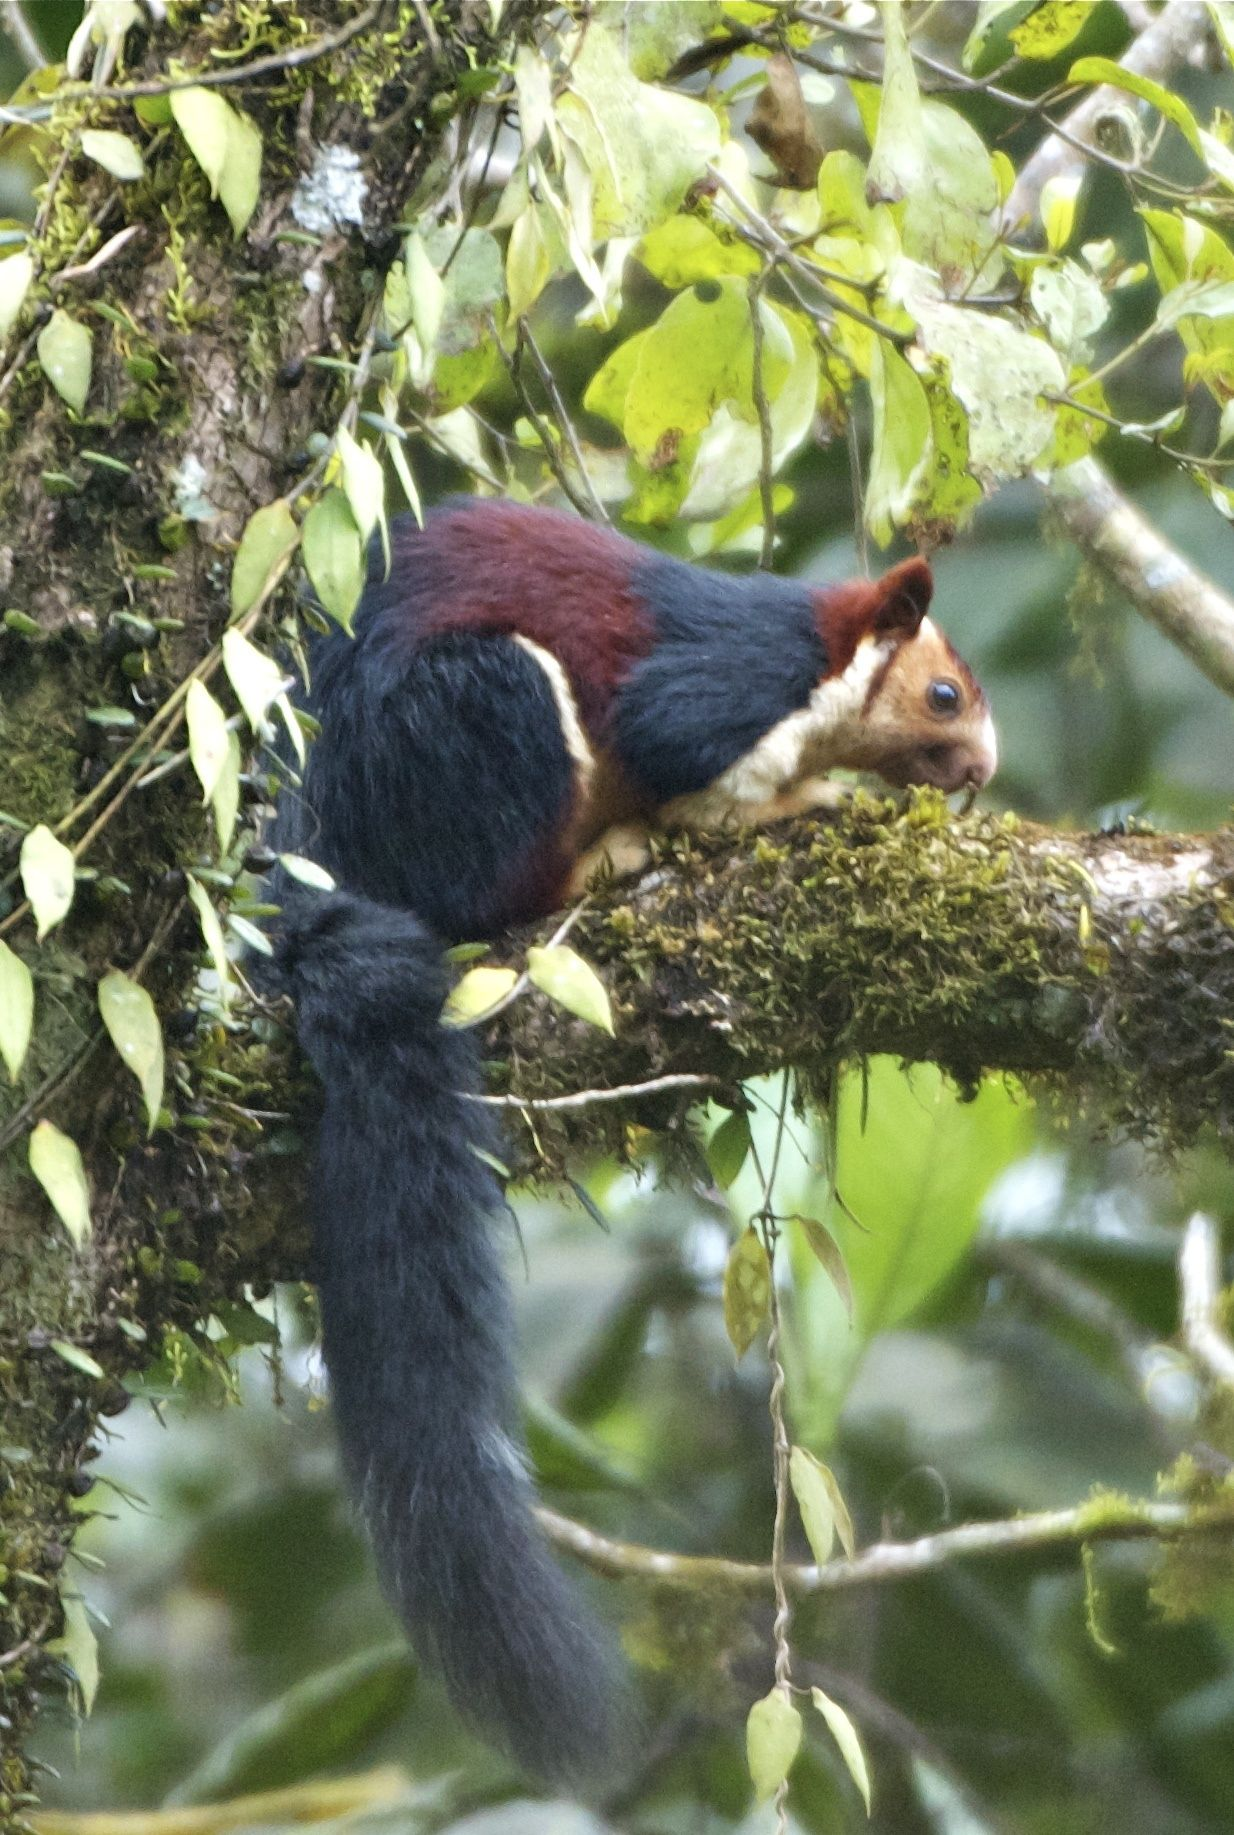 Indian Giant Squirrel By Pradip Janawade On 500px Indian Giant Squirrel Called Malabar Giant Squirrel Ru Indian Giant Squirrel Giant Squirrel Indian Animals